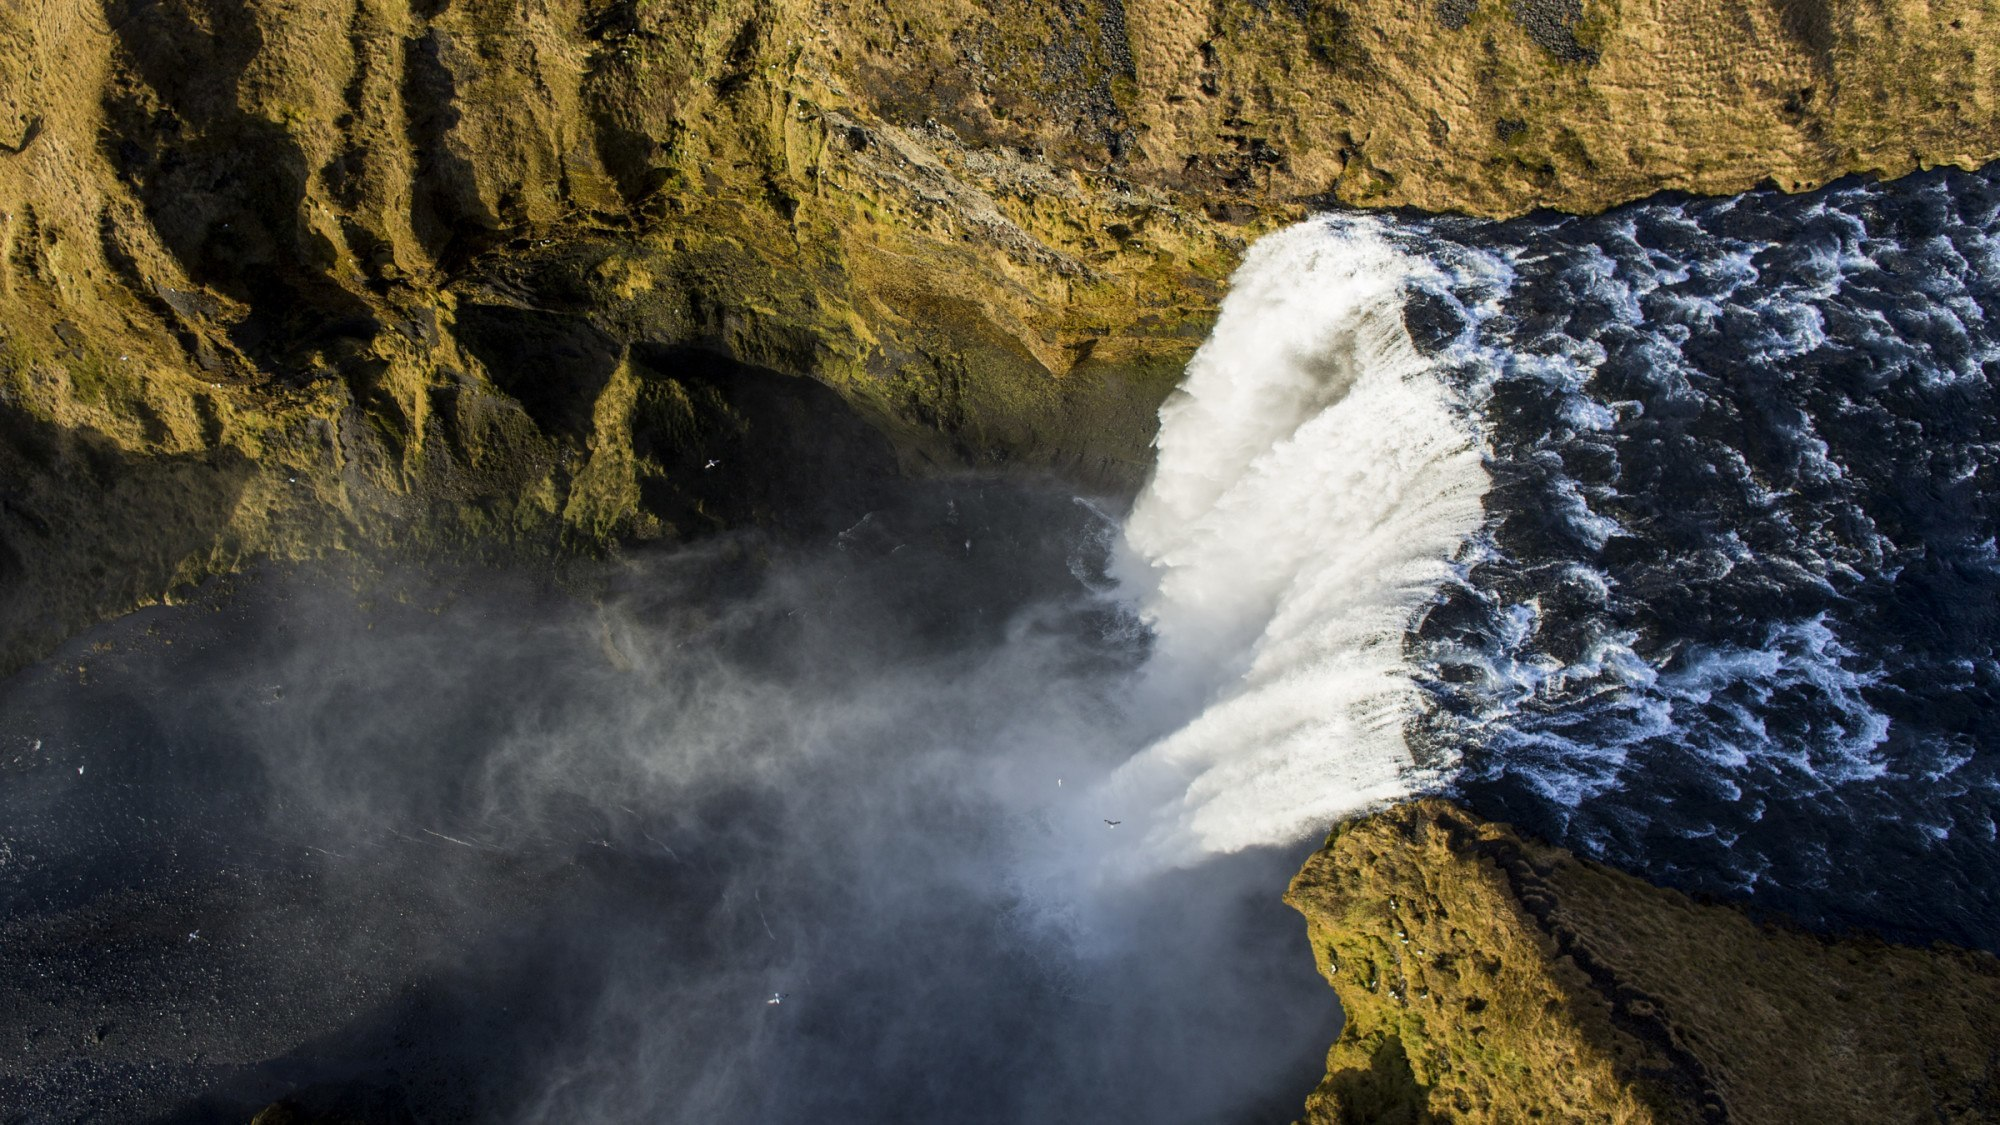 Skogarfoss waterfall seen from a drone.